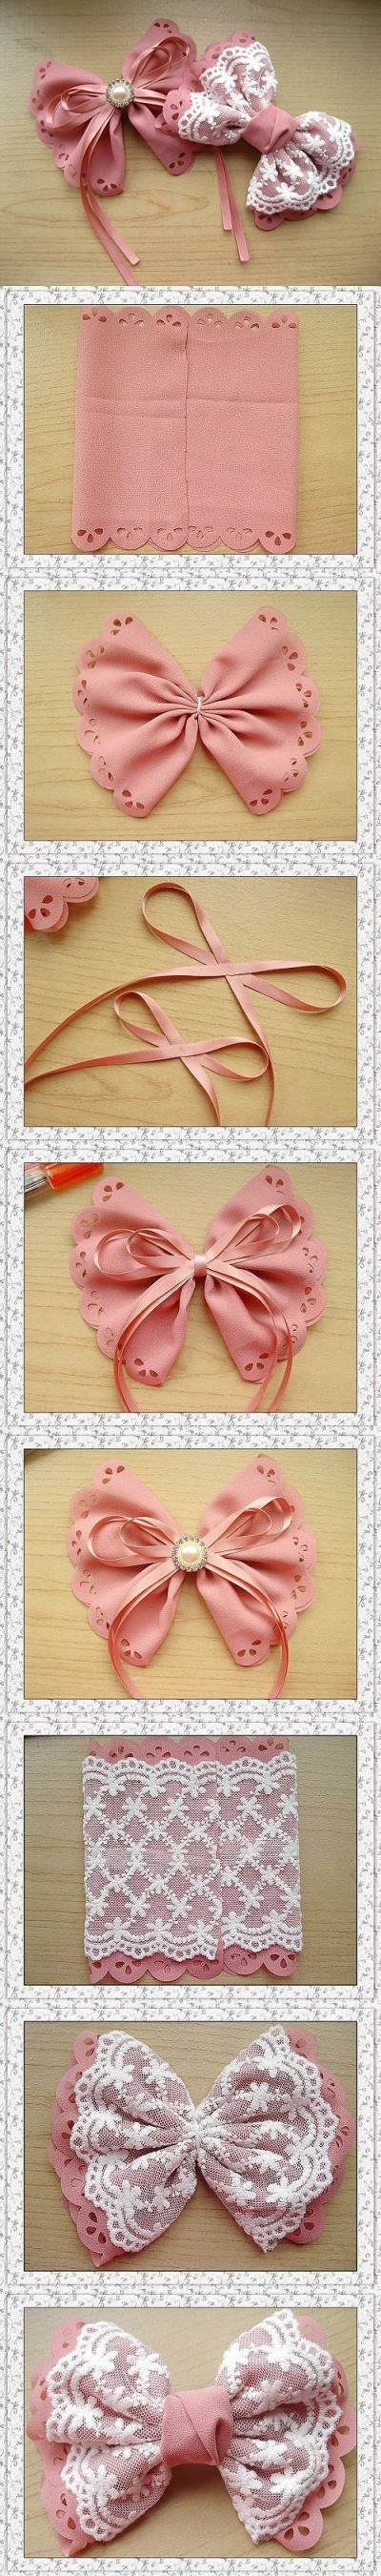 How to make your own lovely bow hairpin step by step DIY tutorial picture instructions